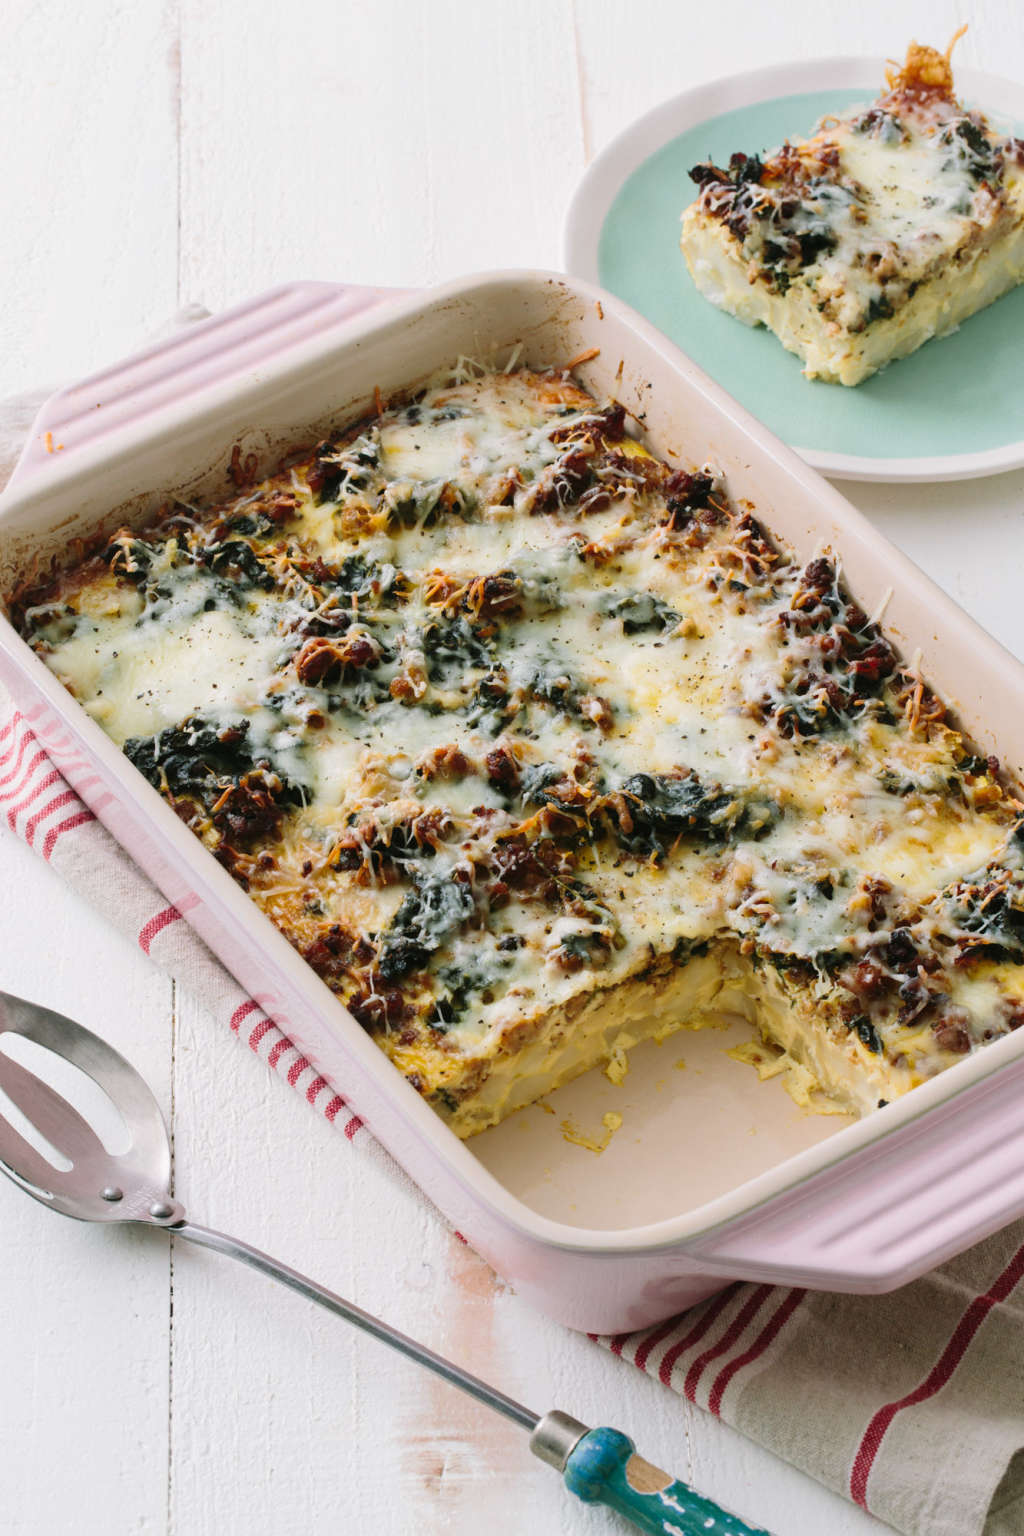 A Sausage & Greens Breakfast Casserole Almost Everyone Loves